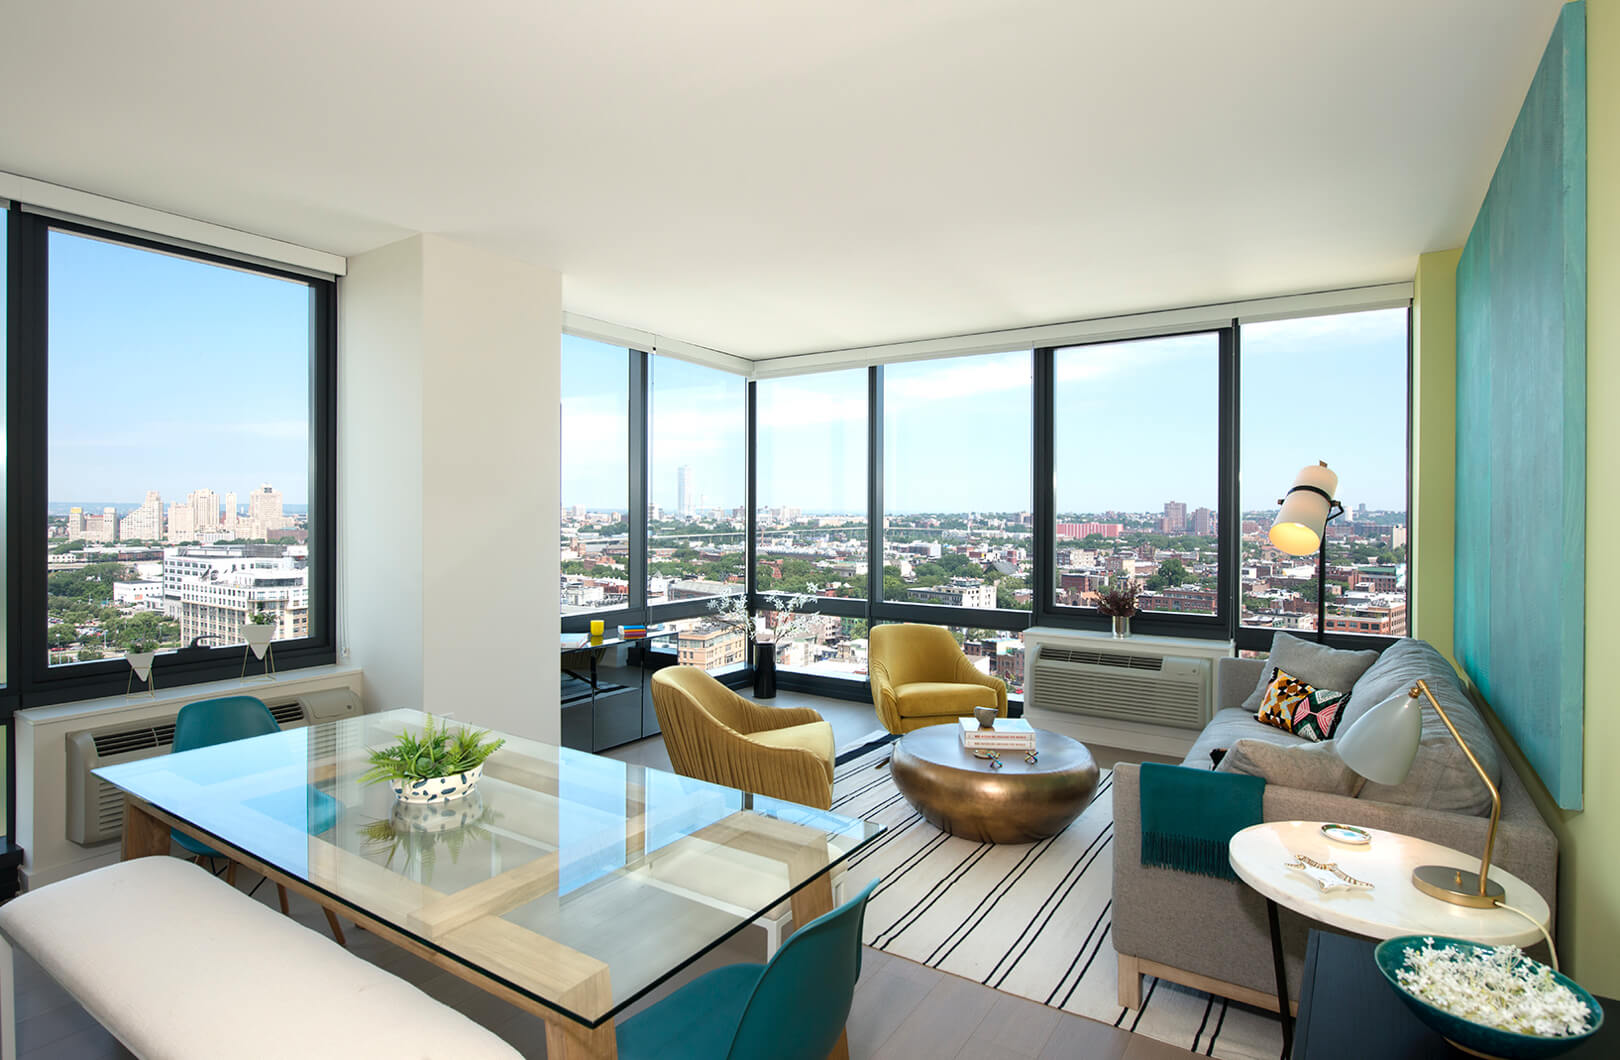 category Residences gallery image 3